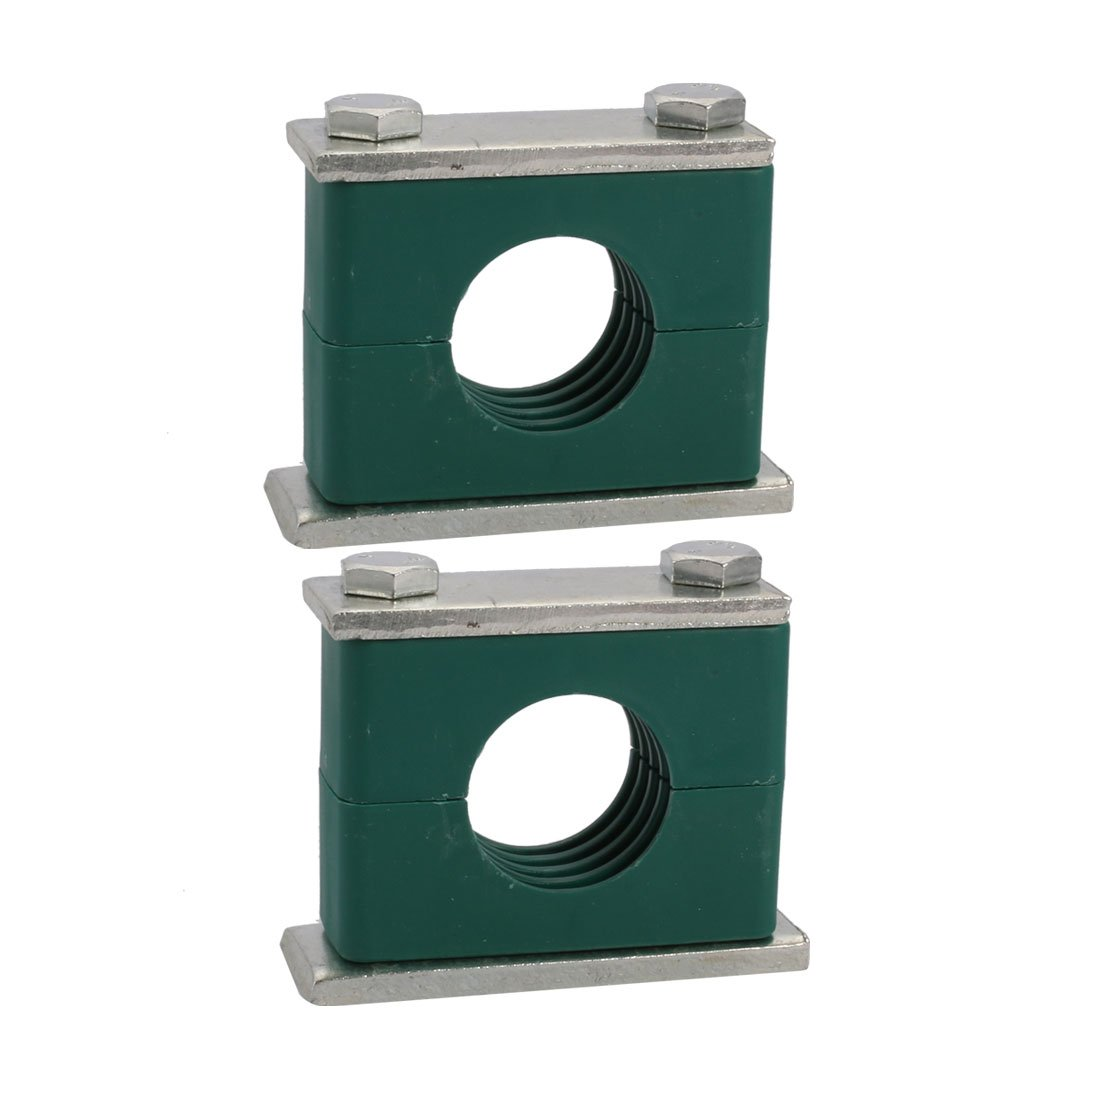 uxcell 38mm Fitting Dia Polypropylene Aluminum Heavy Series Hose Pipe Tube Clamp 2pcs